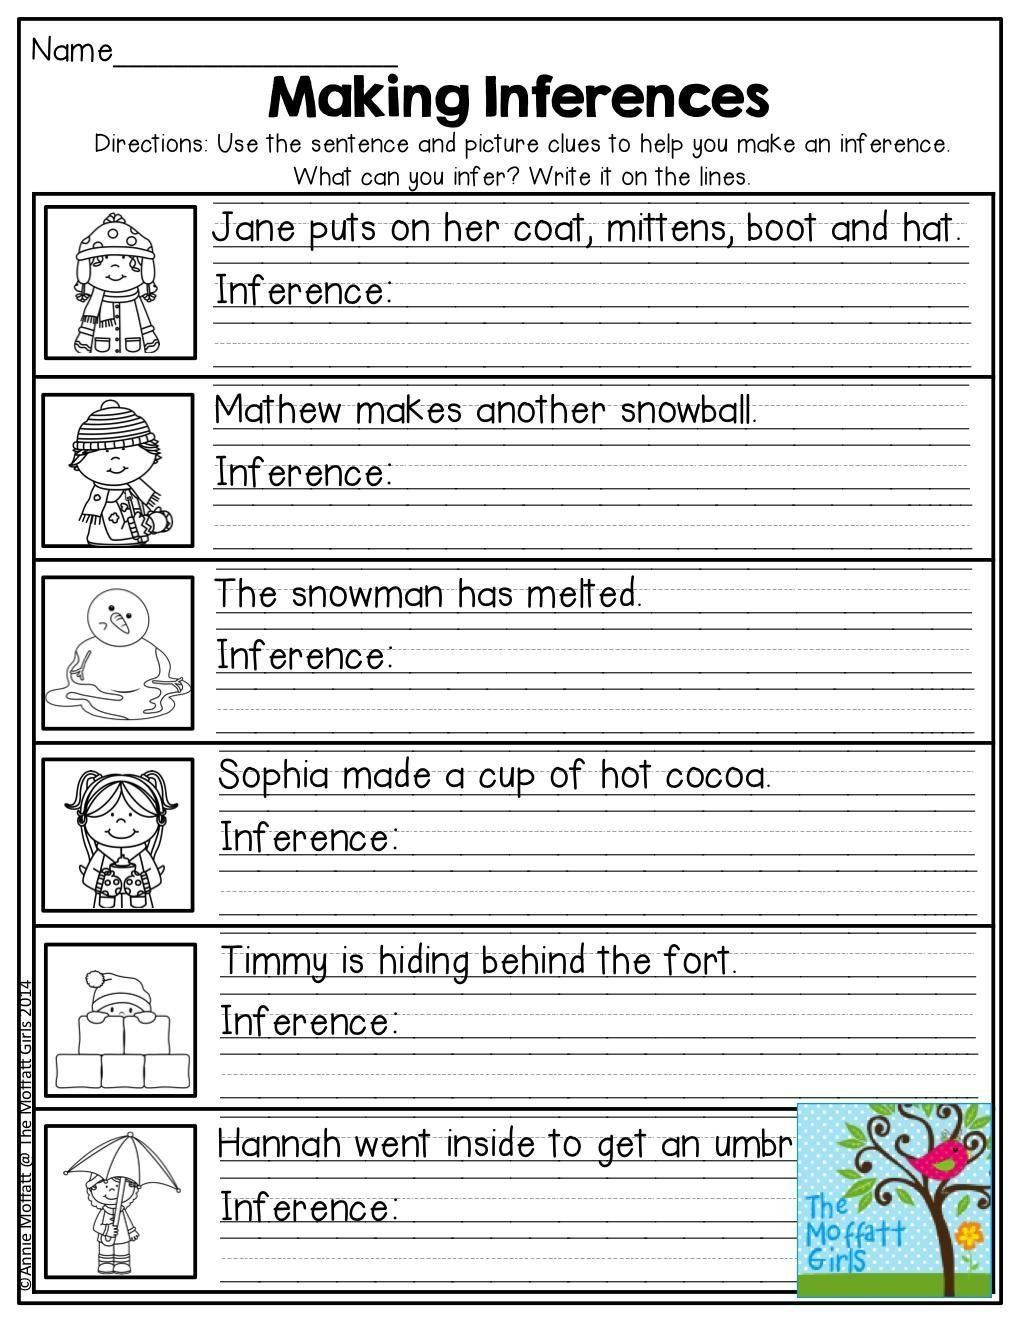 Making Inferences Worksheets 2nd Grade Worksheet Free